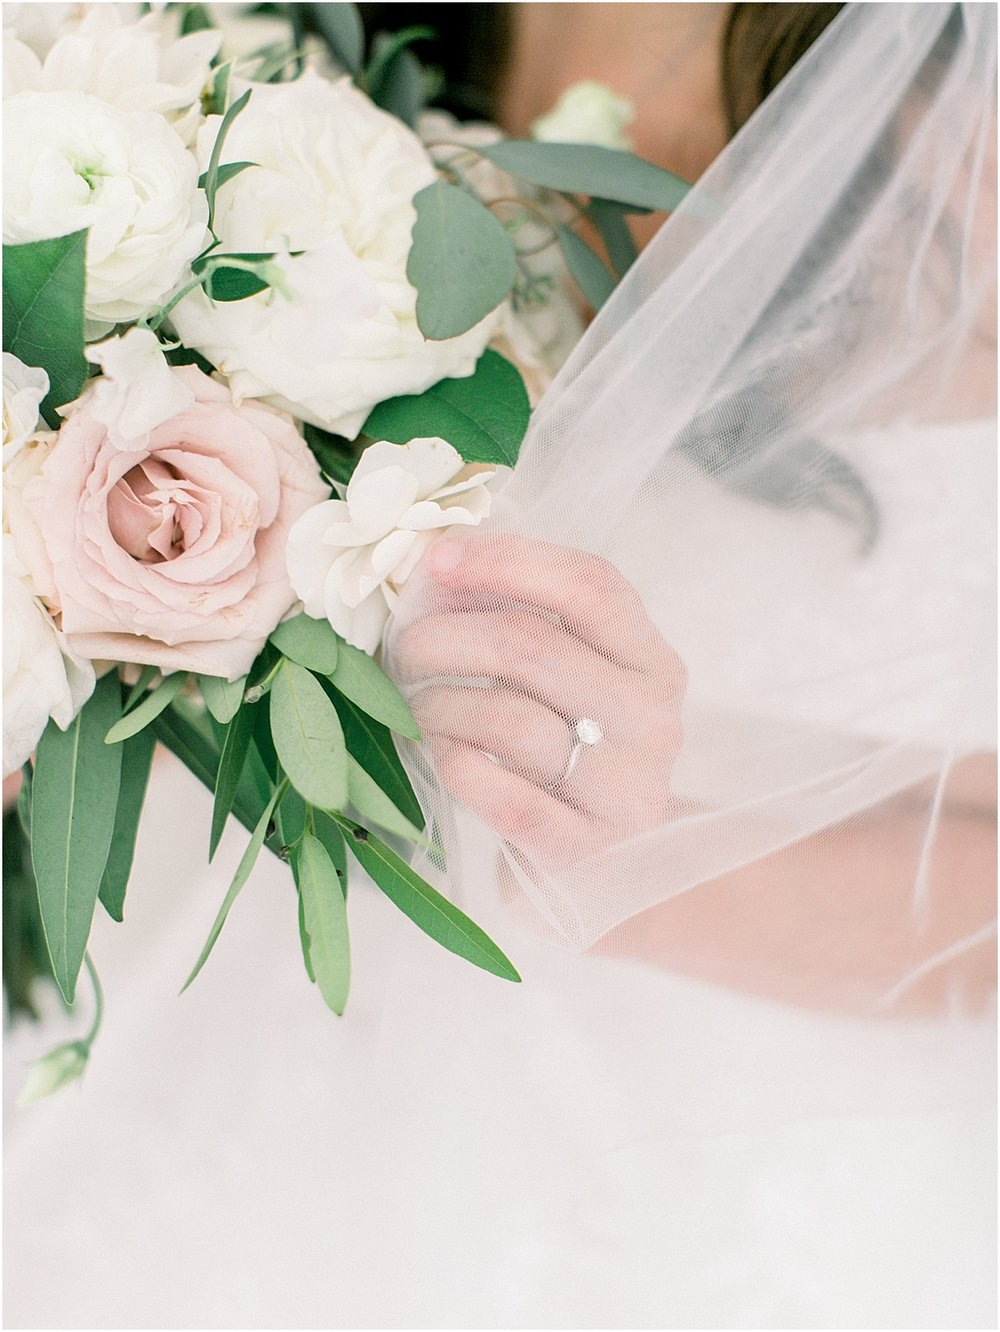 our_wedding_day_troy_NY_emma_willard_fairy_tale_royal_neutral_beauty_and_the_beast_moped_private_estate_cape_cod_boston_wedding_photographer_meredith_jane_photography_chris_kerr_photo_1954.jpg